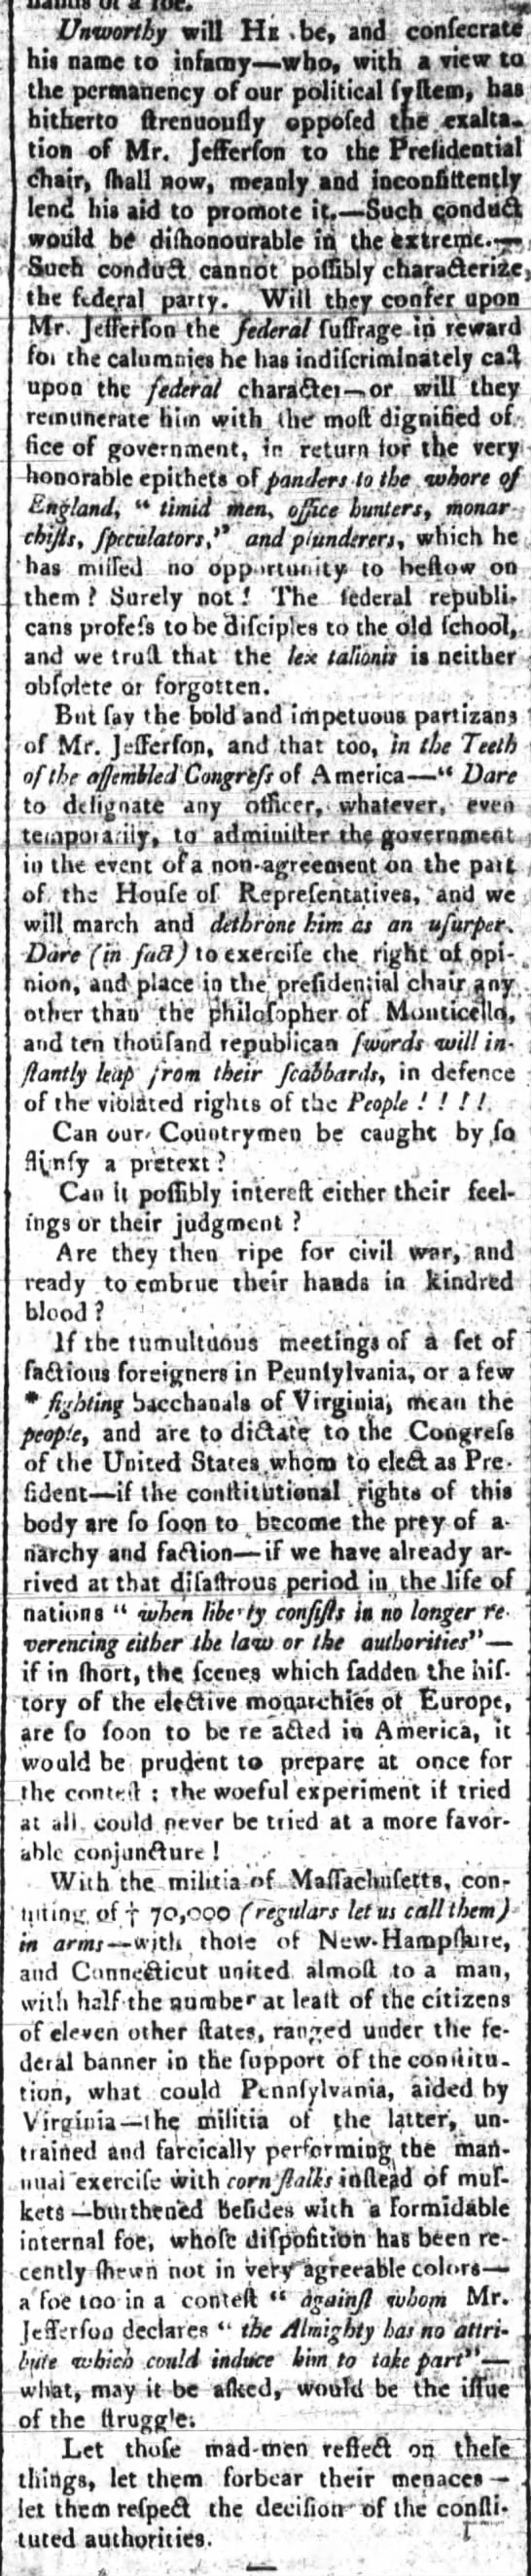 Article from a Federalist paper critical of Federalists in Congress willing to support Jefferson -